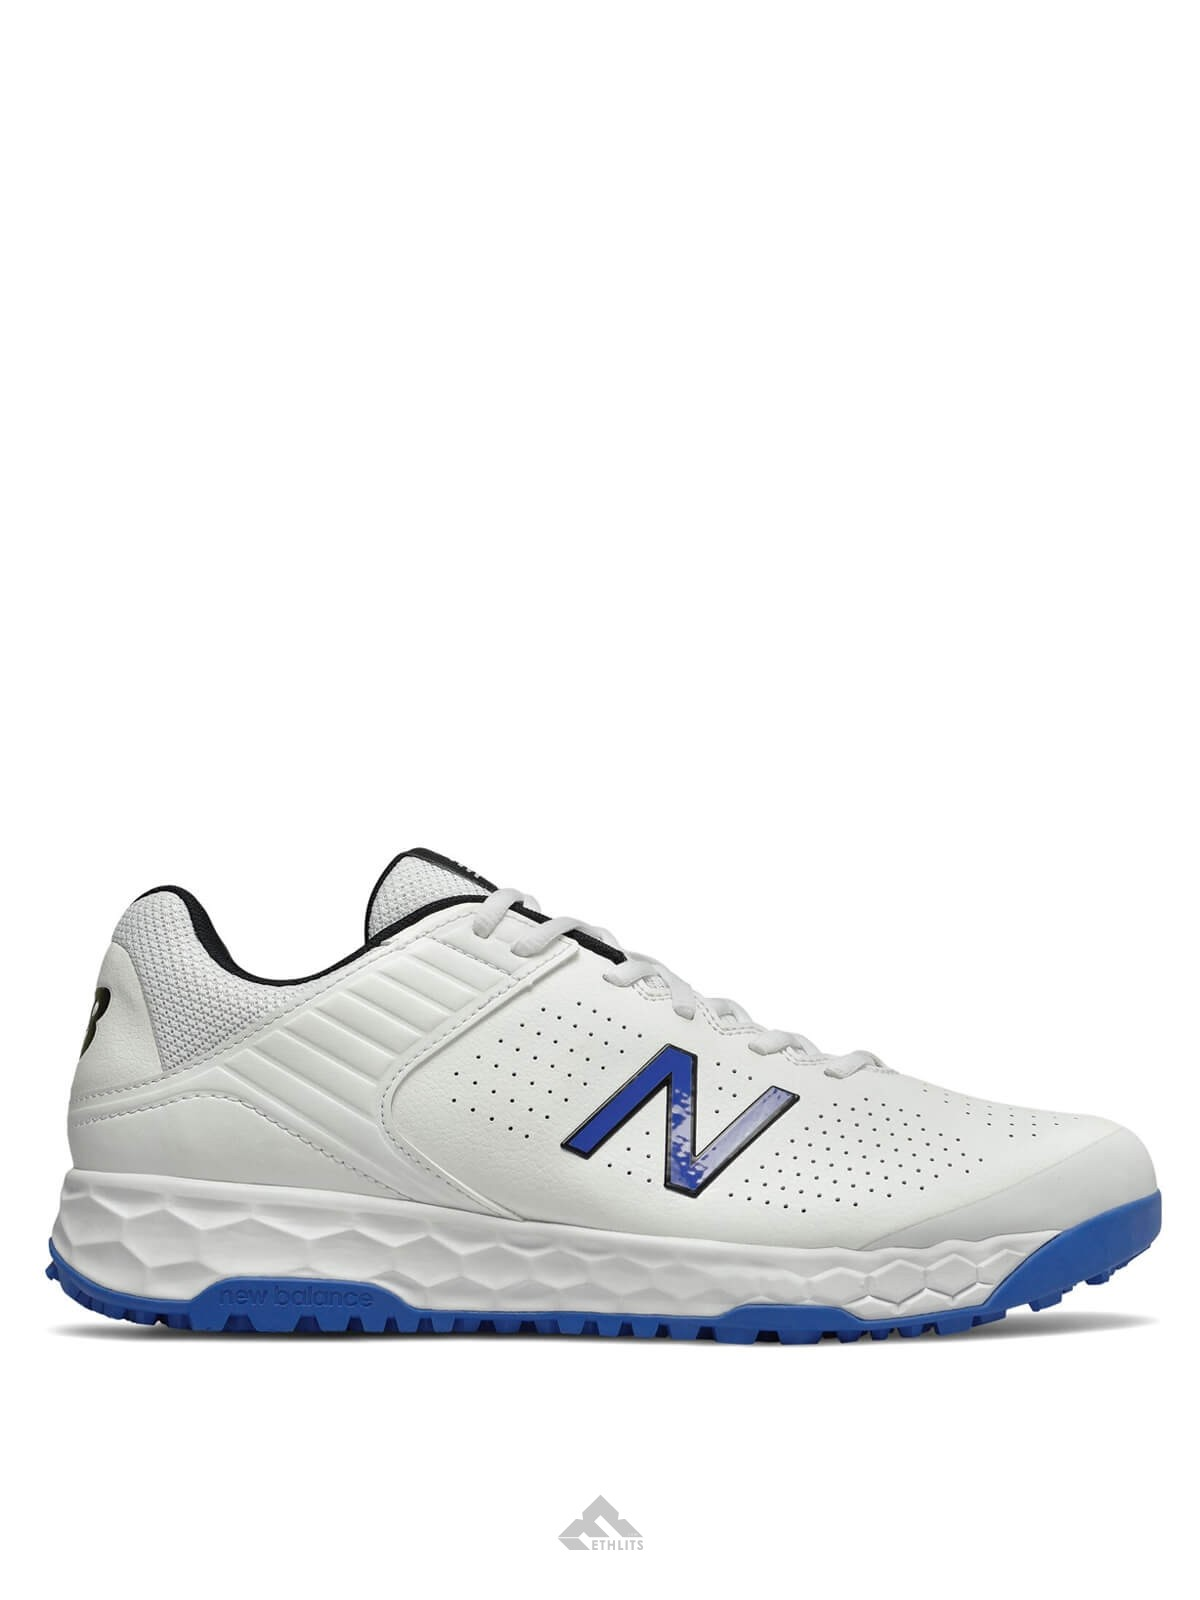 Espera un minuto Cuidado oferta  Buy New Balance CK4020 Blue Rubber Spike Cricket Shoes (2019-20) Online in  India at Best Price, Reviews